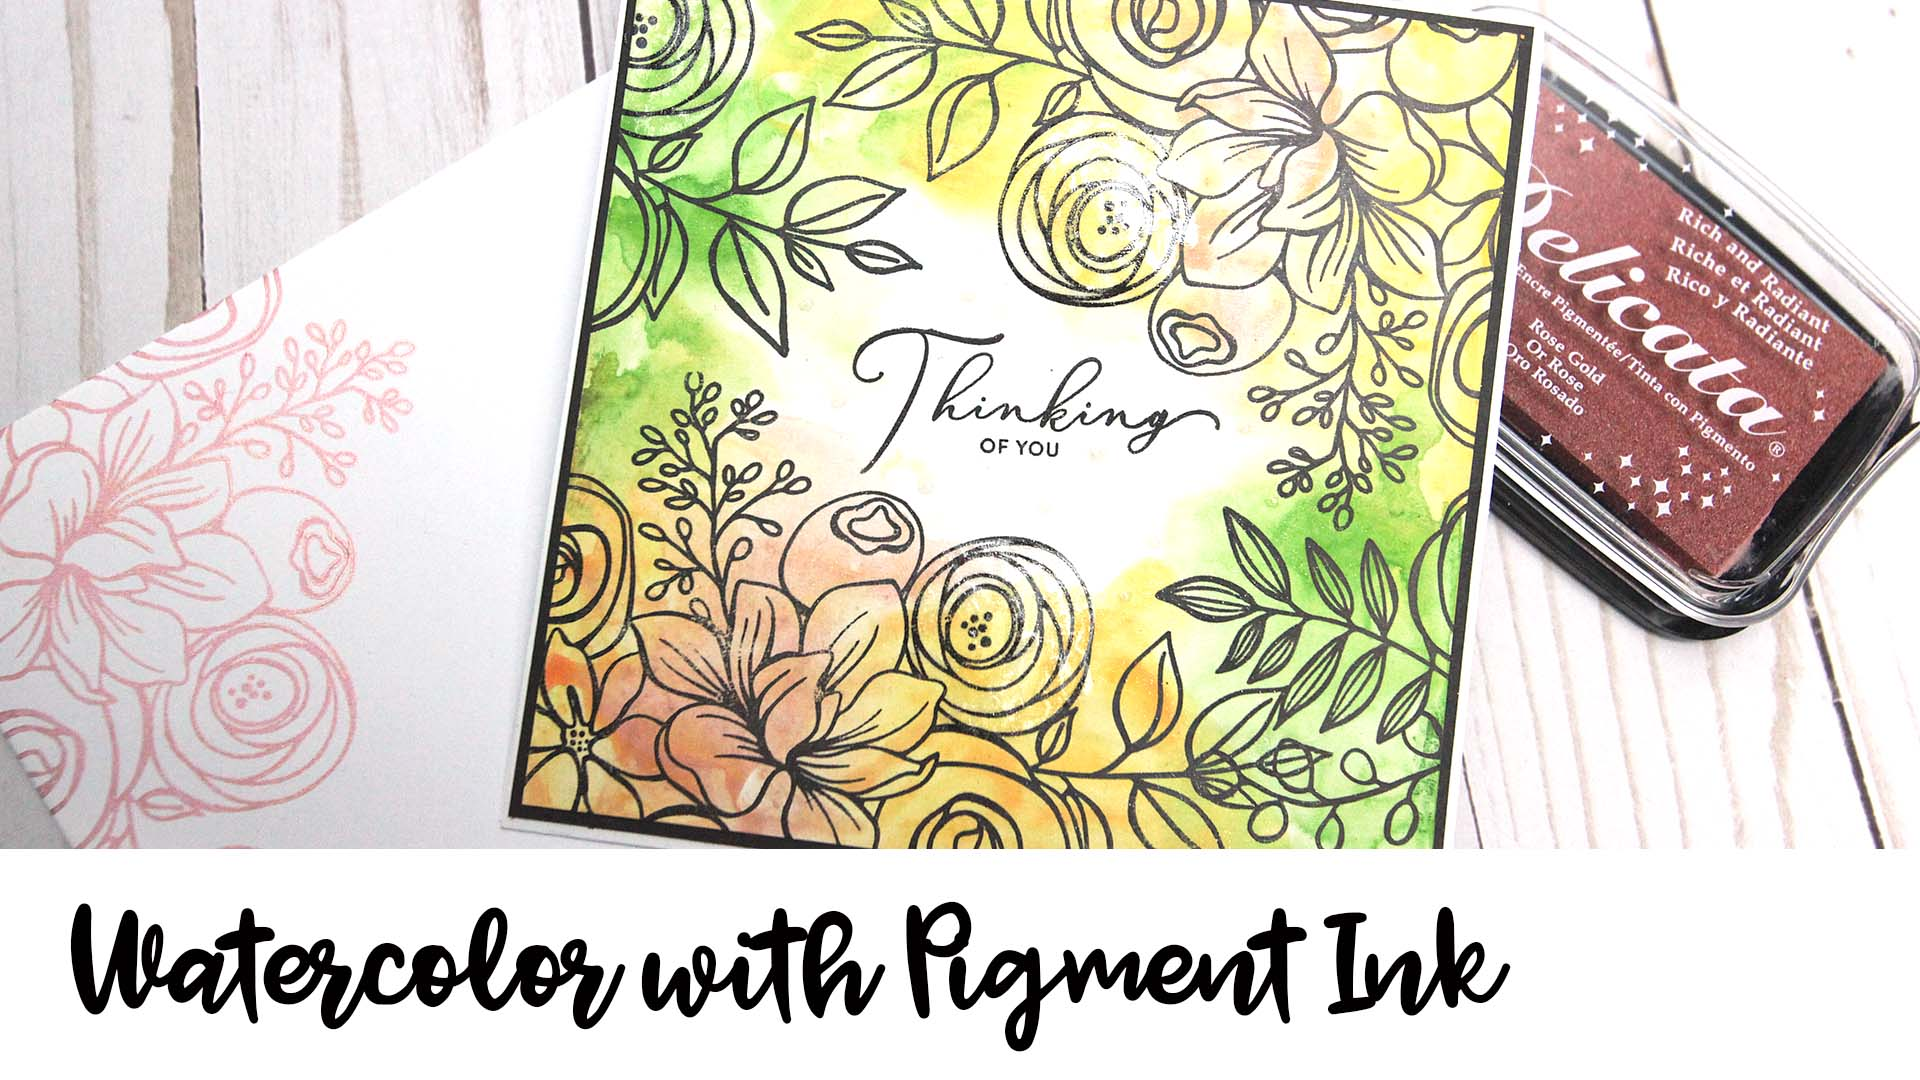 Handmade thinking of you card featuring watercolored floral images.